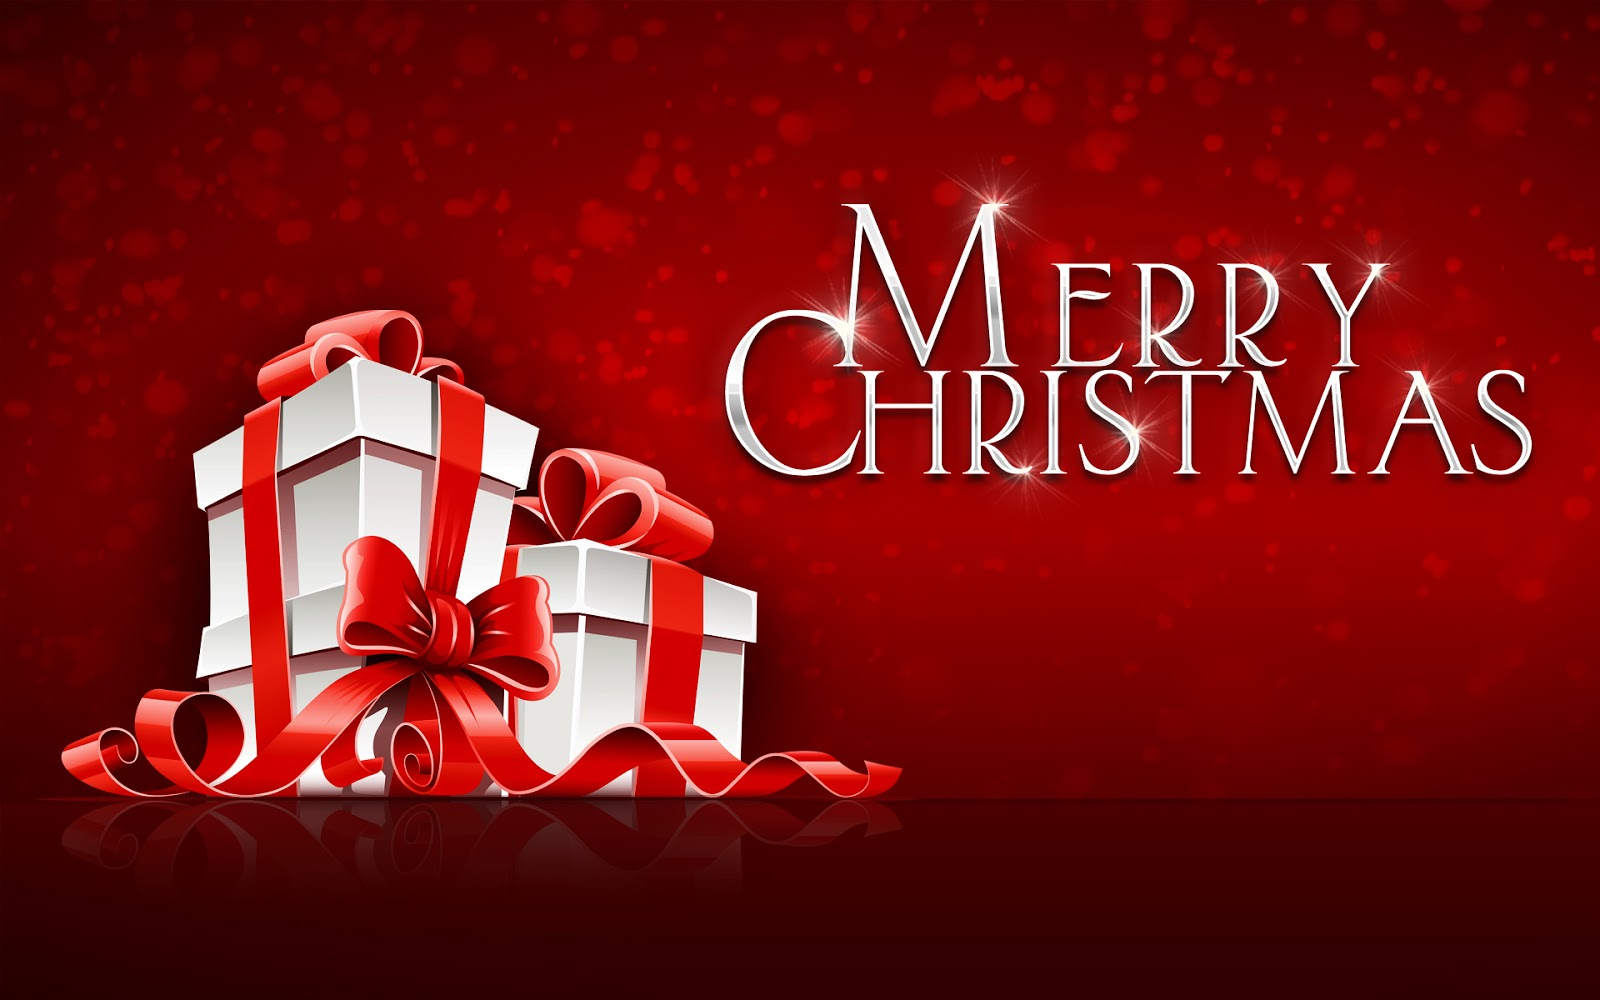 Latest Happy Merry Christmas Images 2017 For Facebook And Whatsappp